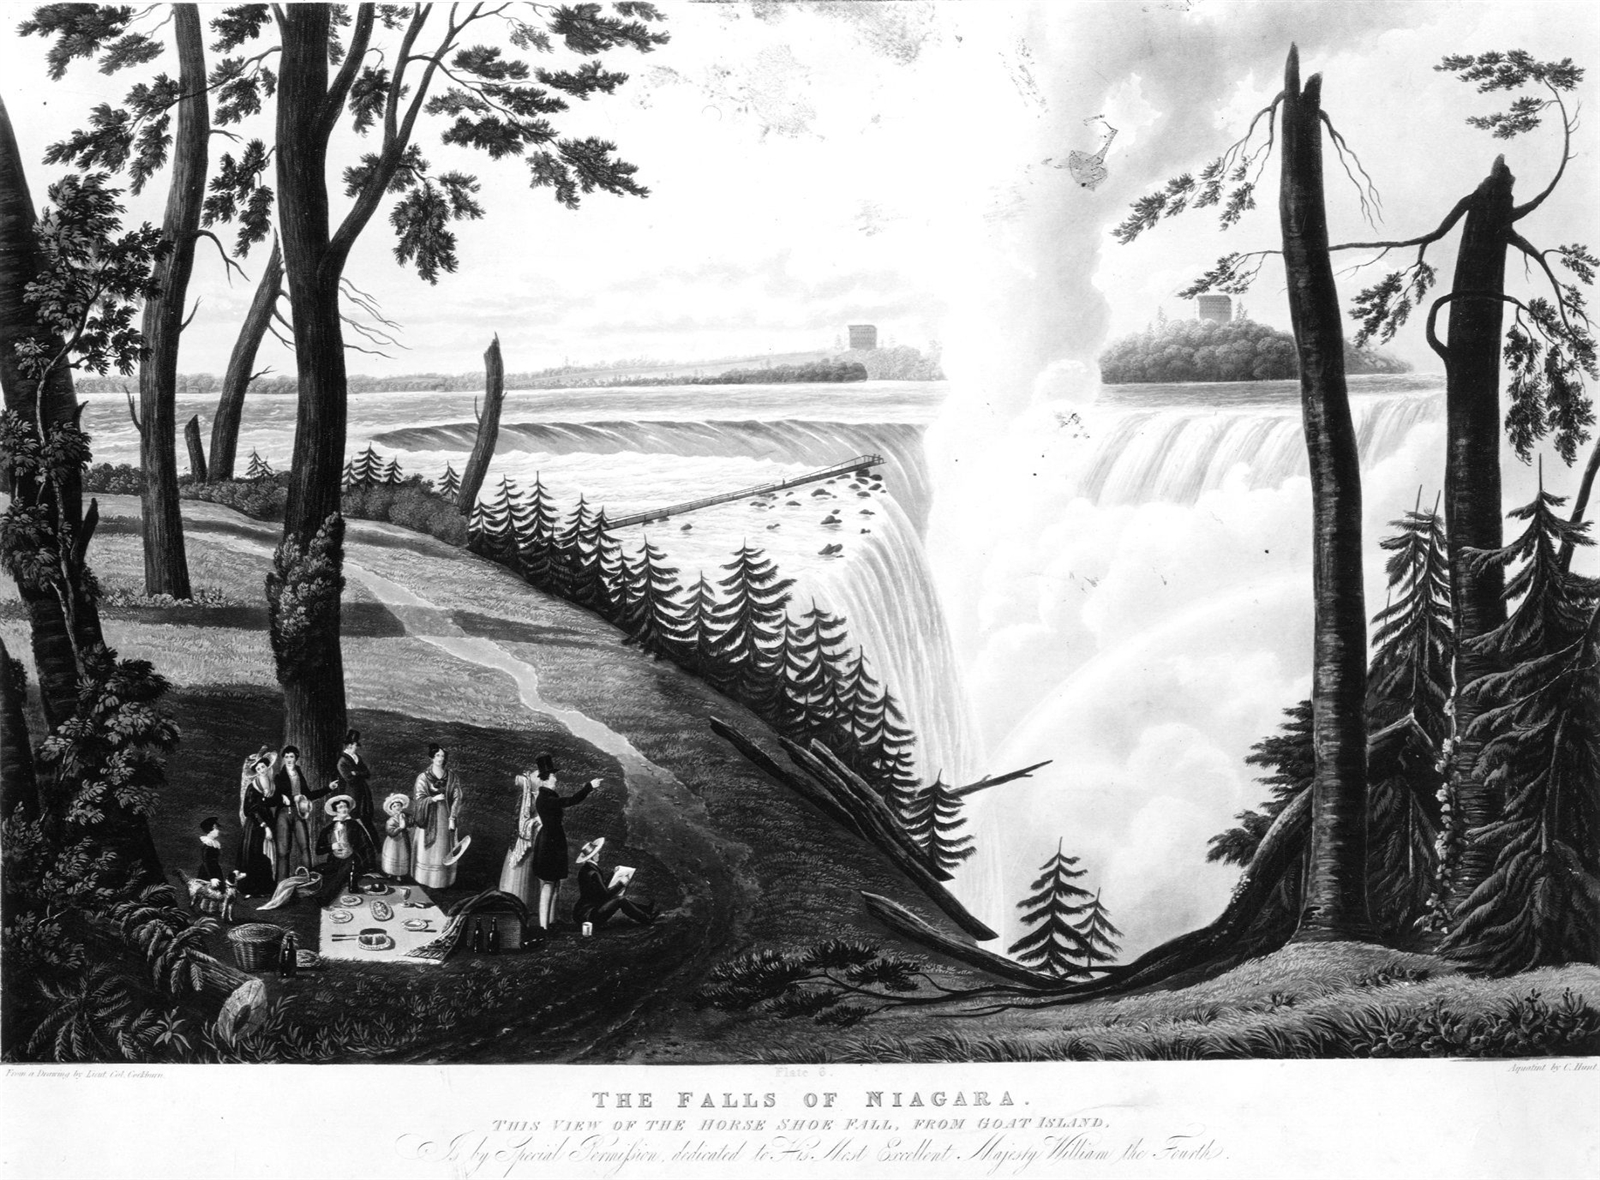 """An illustration of Niagara Falls in 1833, similar to how it would have looked when Sam Patch jumped in 1829. This is a drawing credited to """"Lieut. Col Cockburn,"""" """"dedicated to His Most Excellent Majesty William the Fourth"""" and labeled """"The Falls of Niagara."""" (Buffalo News archives)"""